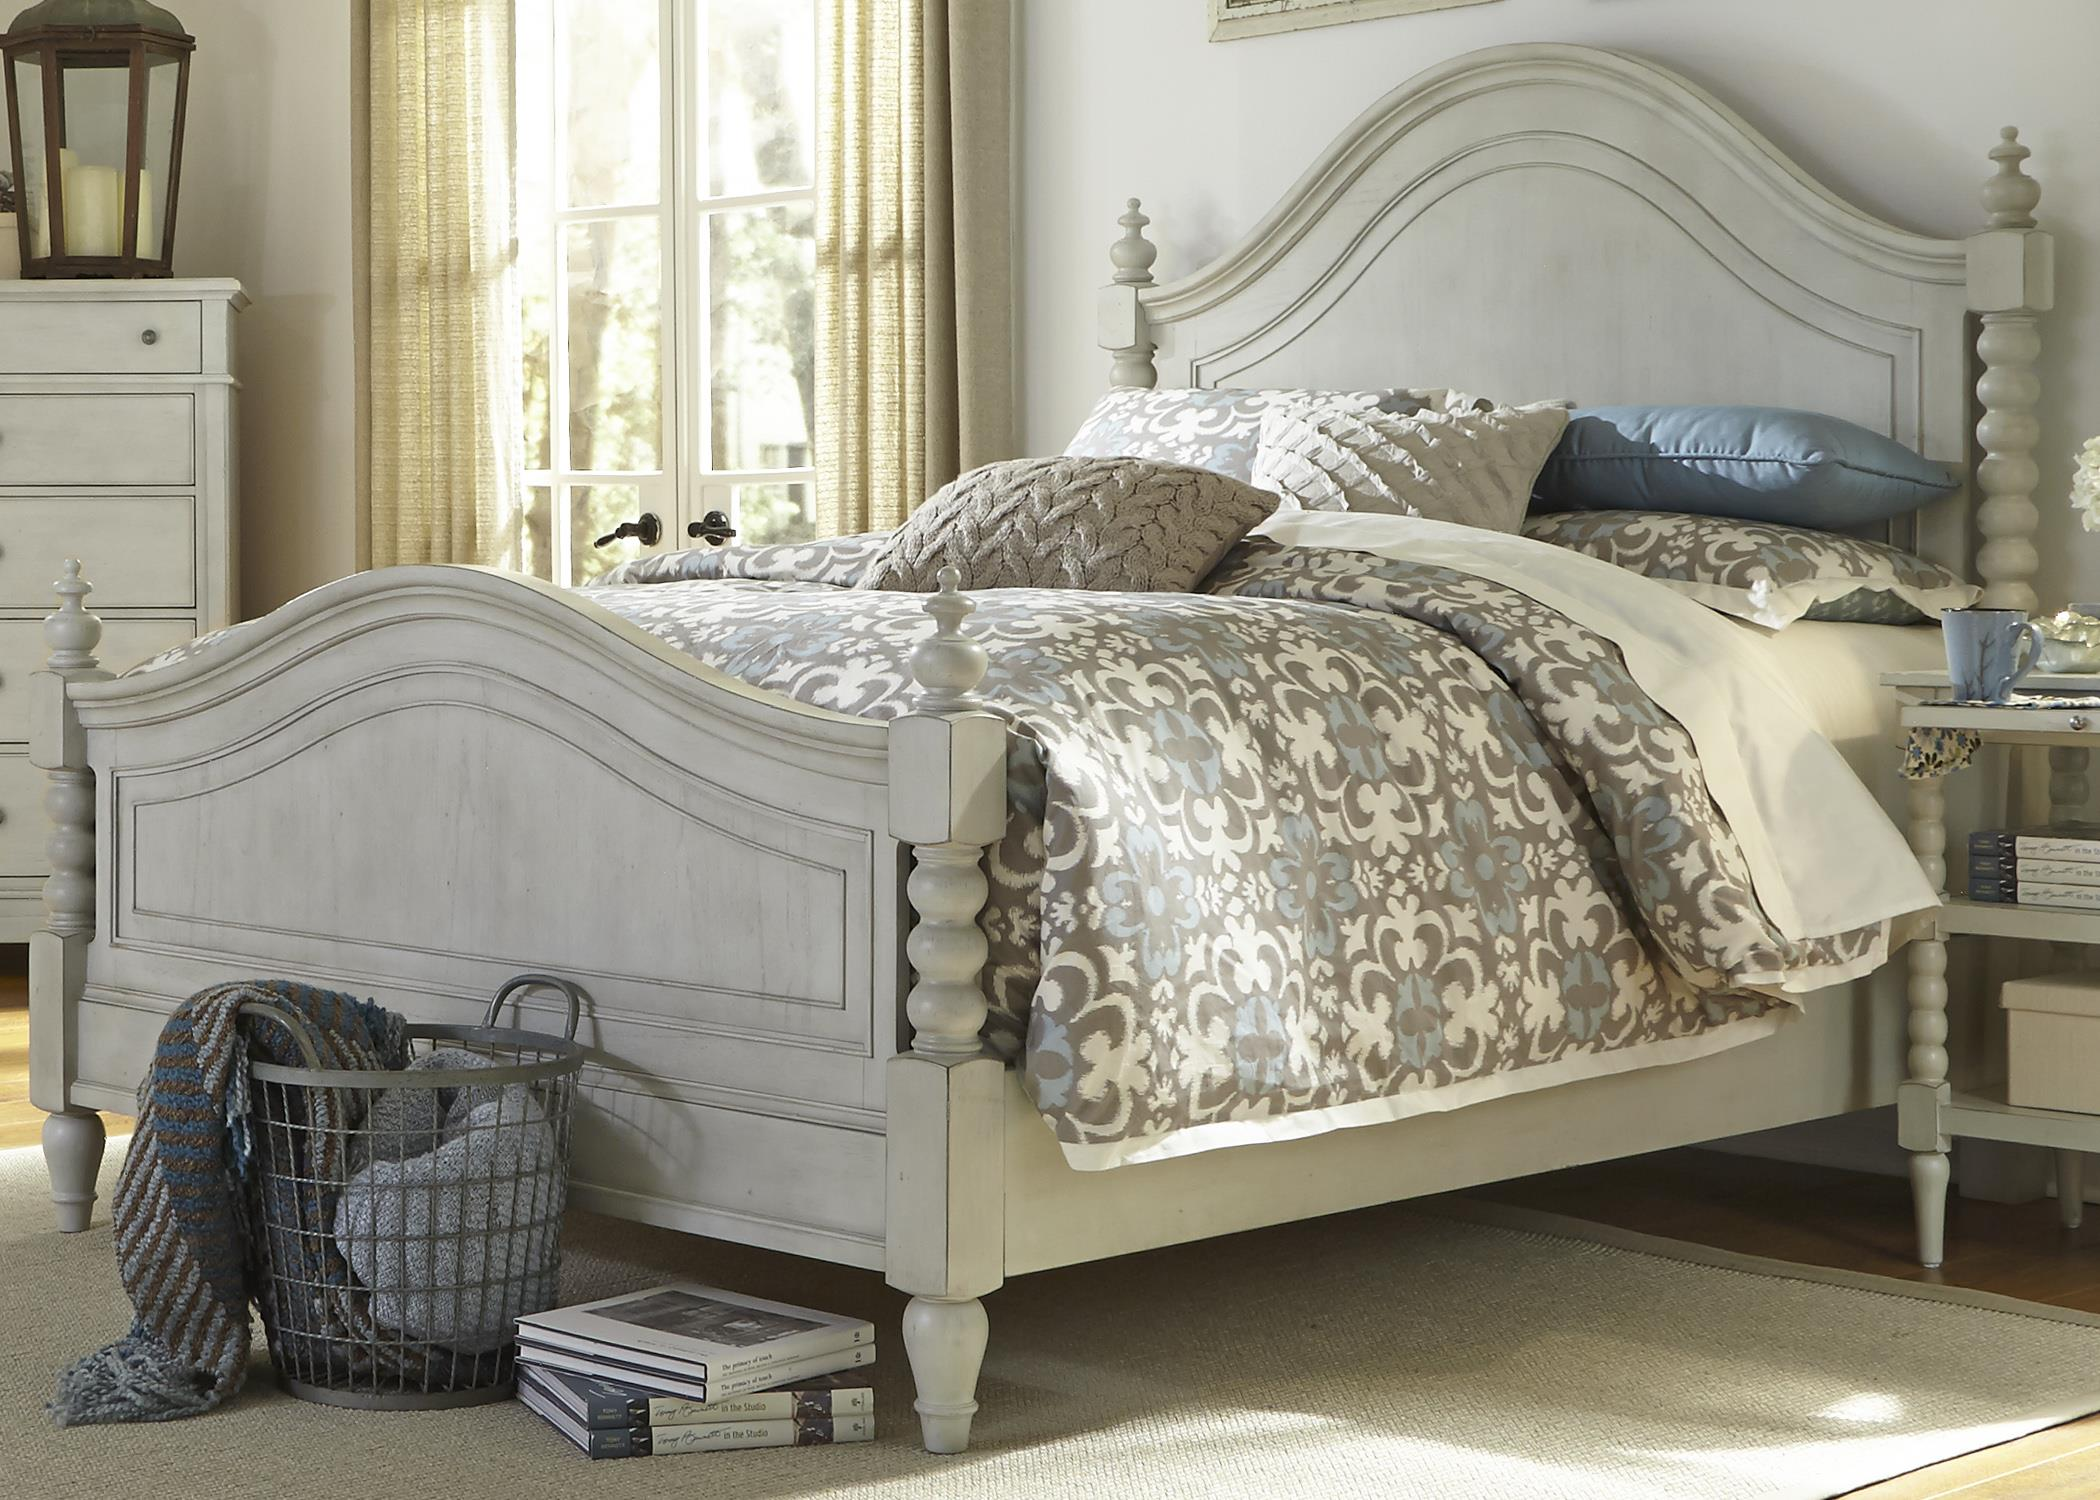 Liberty Furniture Harbor View King Poster Bed with Barley Twist Accents - Item Number: 731-BR-KPS